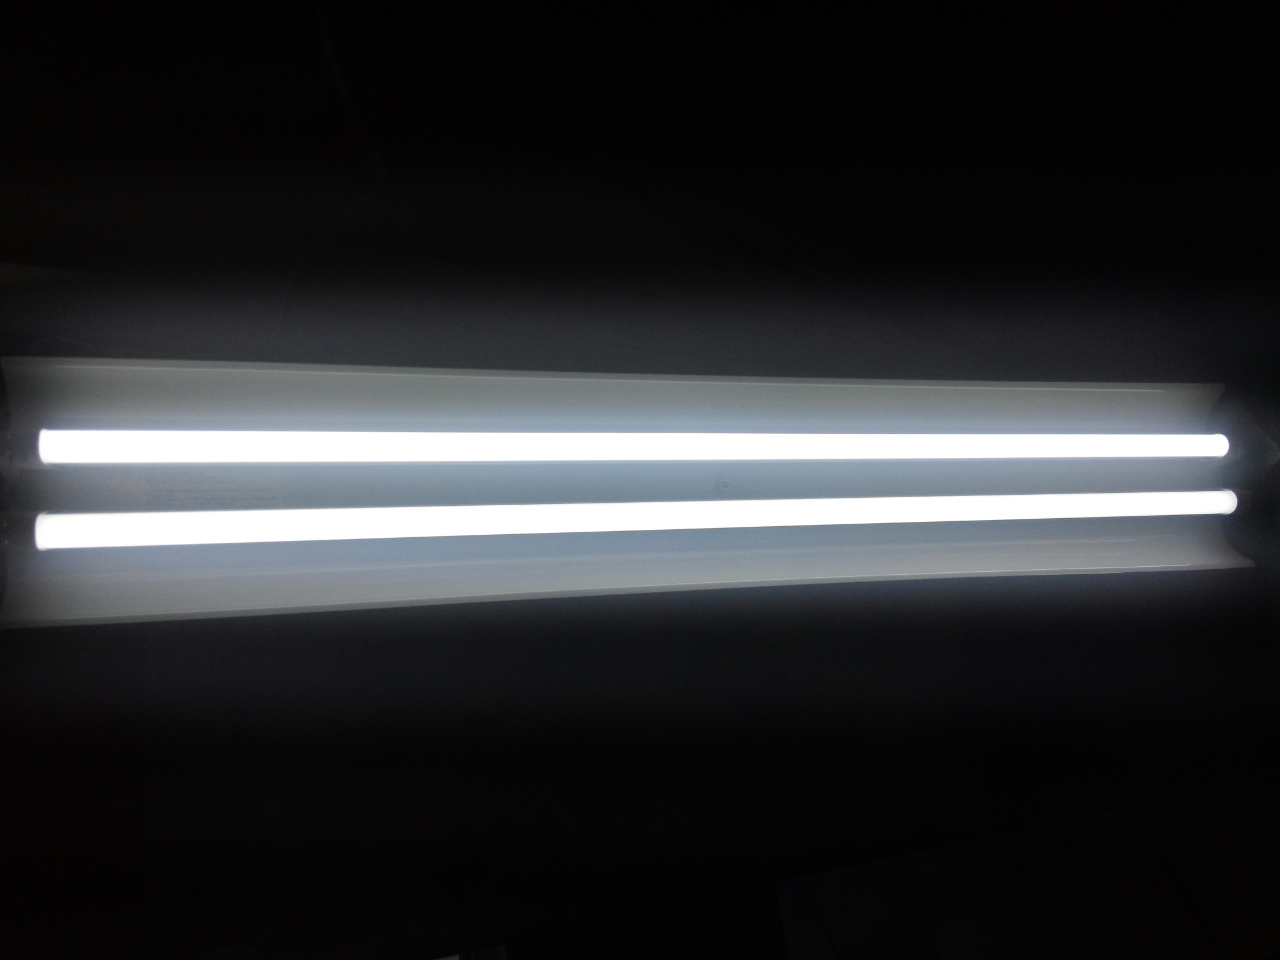 LED Tube Light Illuminated